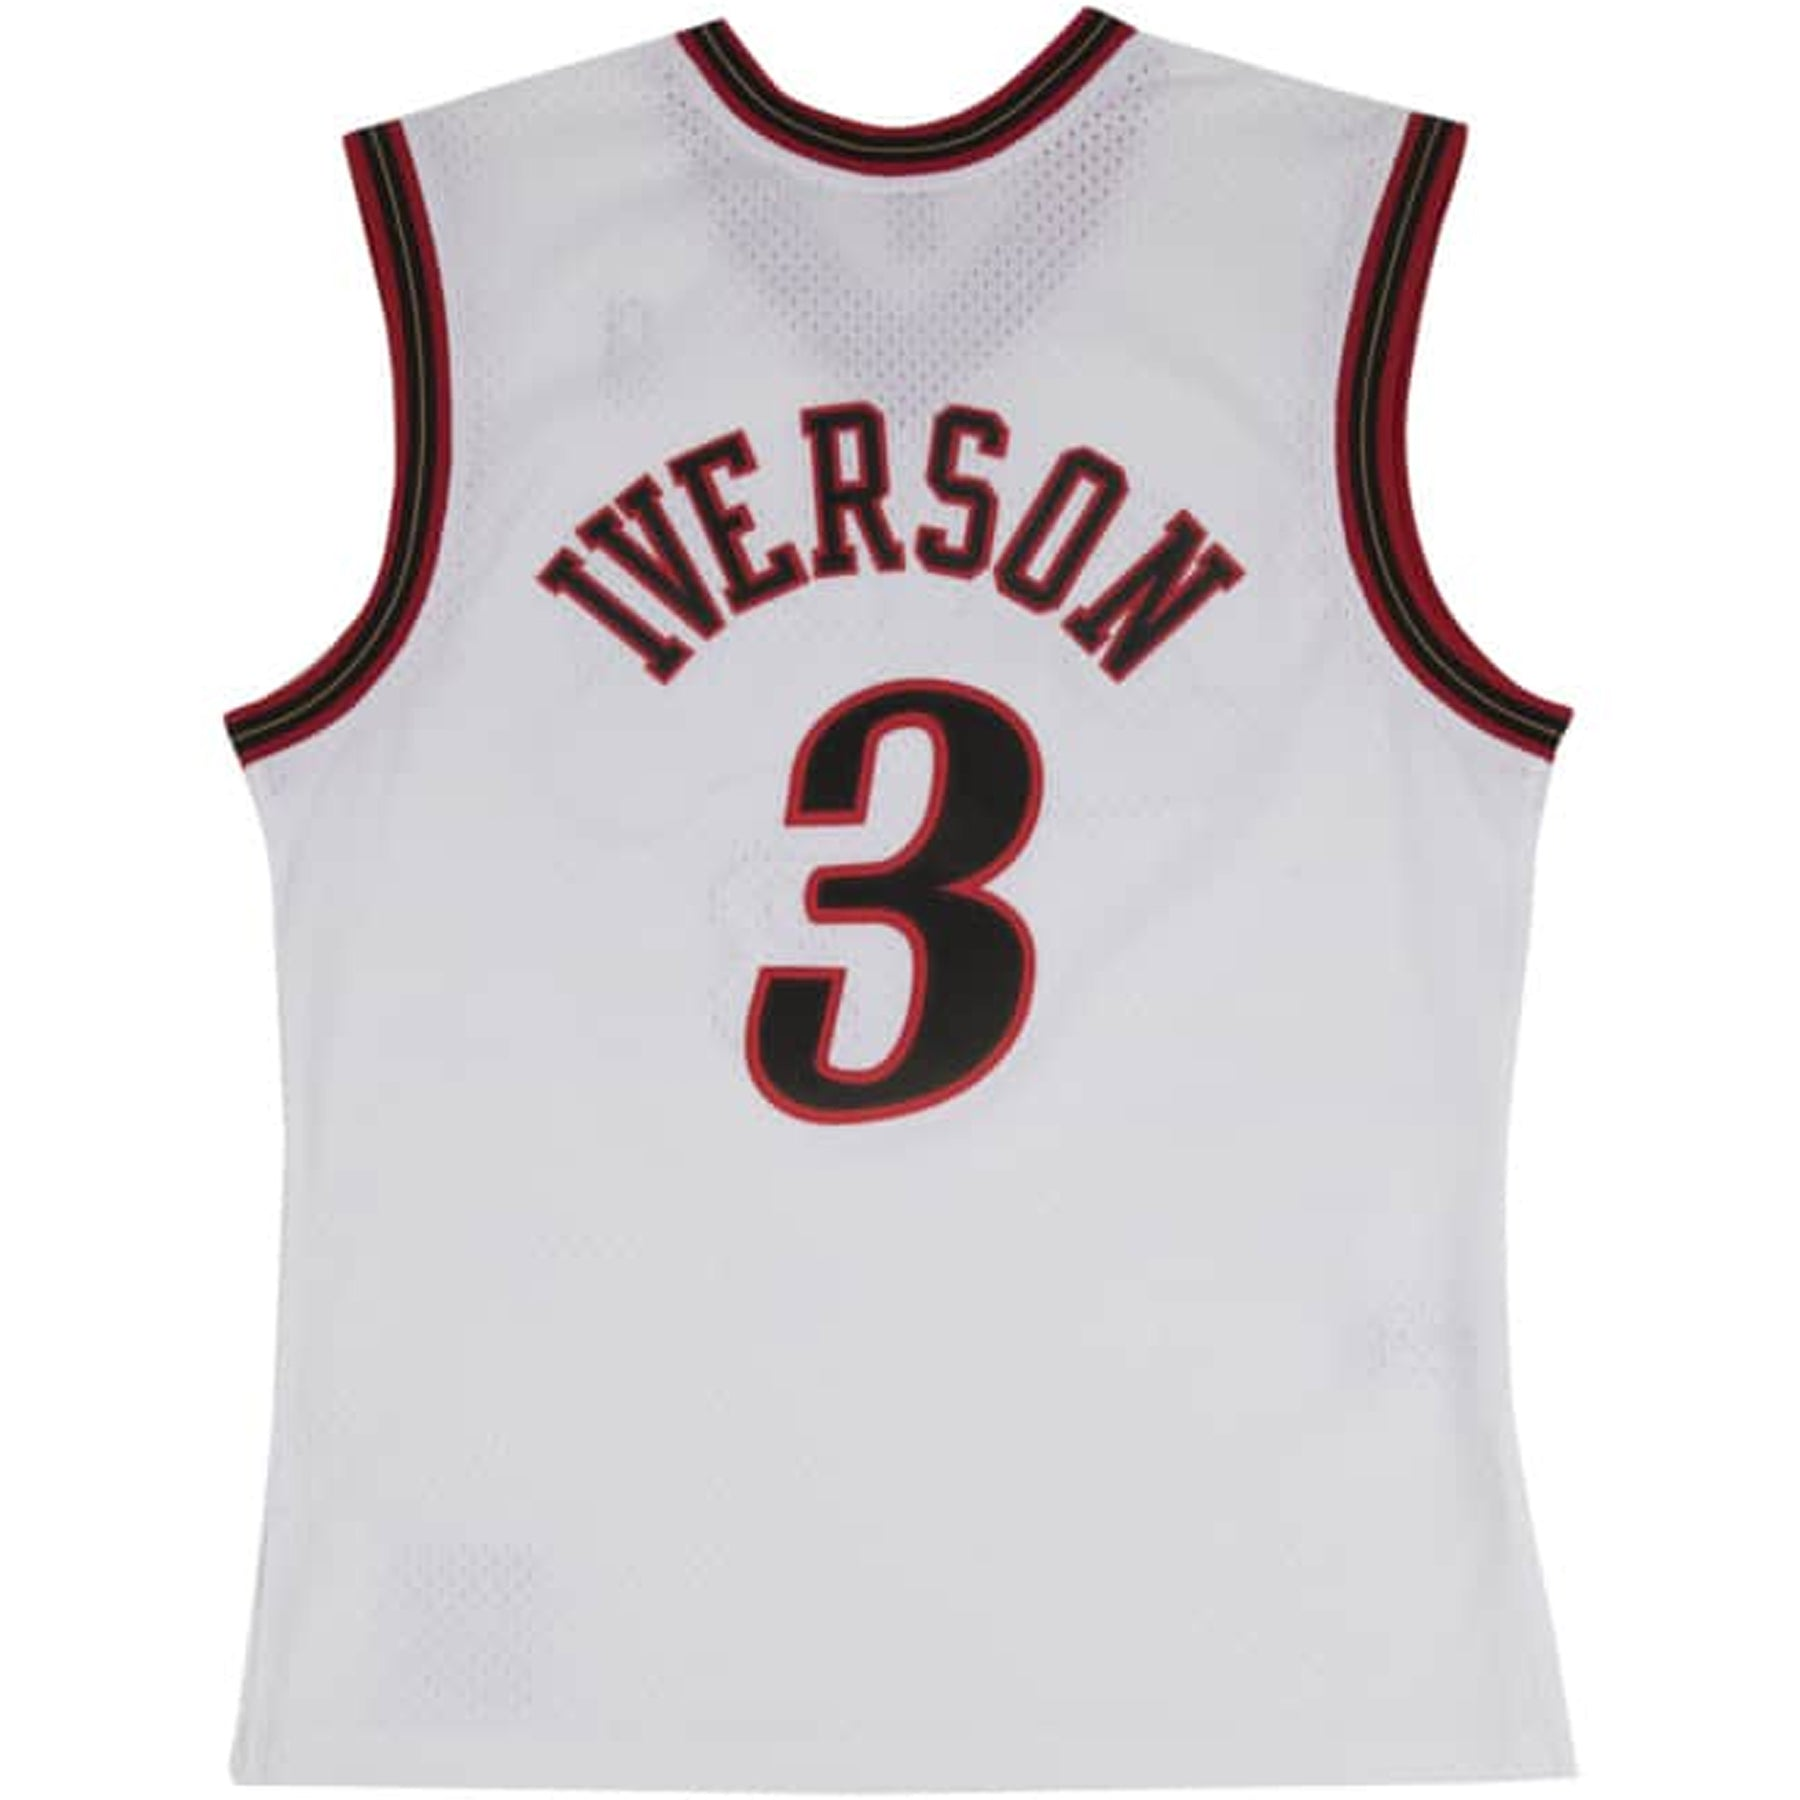 7675089ae979 ... sixers logo embroidered  the back of the white allen iverson swingman  jersey has the word iverson embroidered in black ...